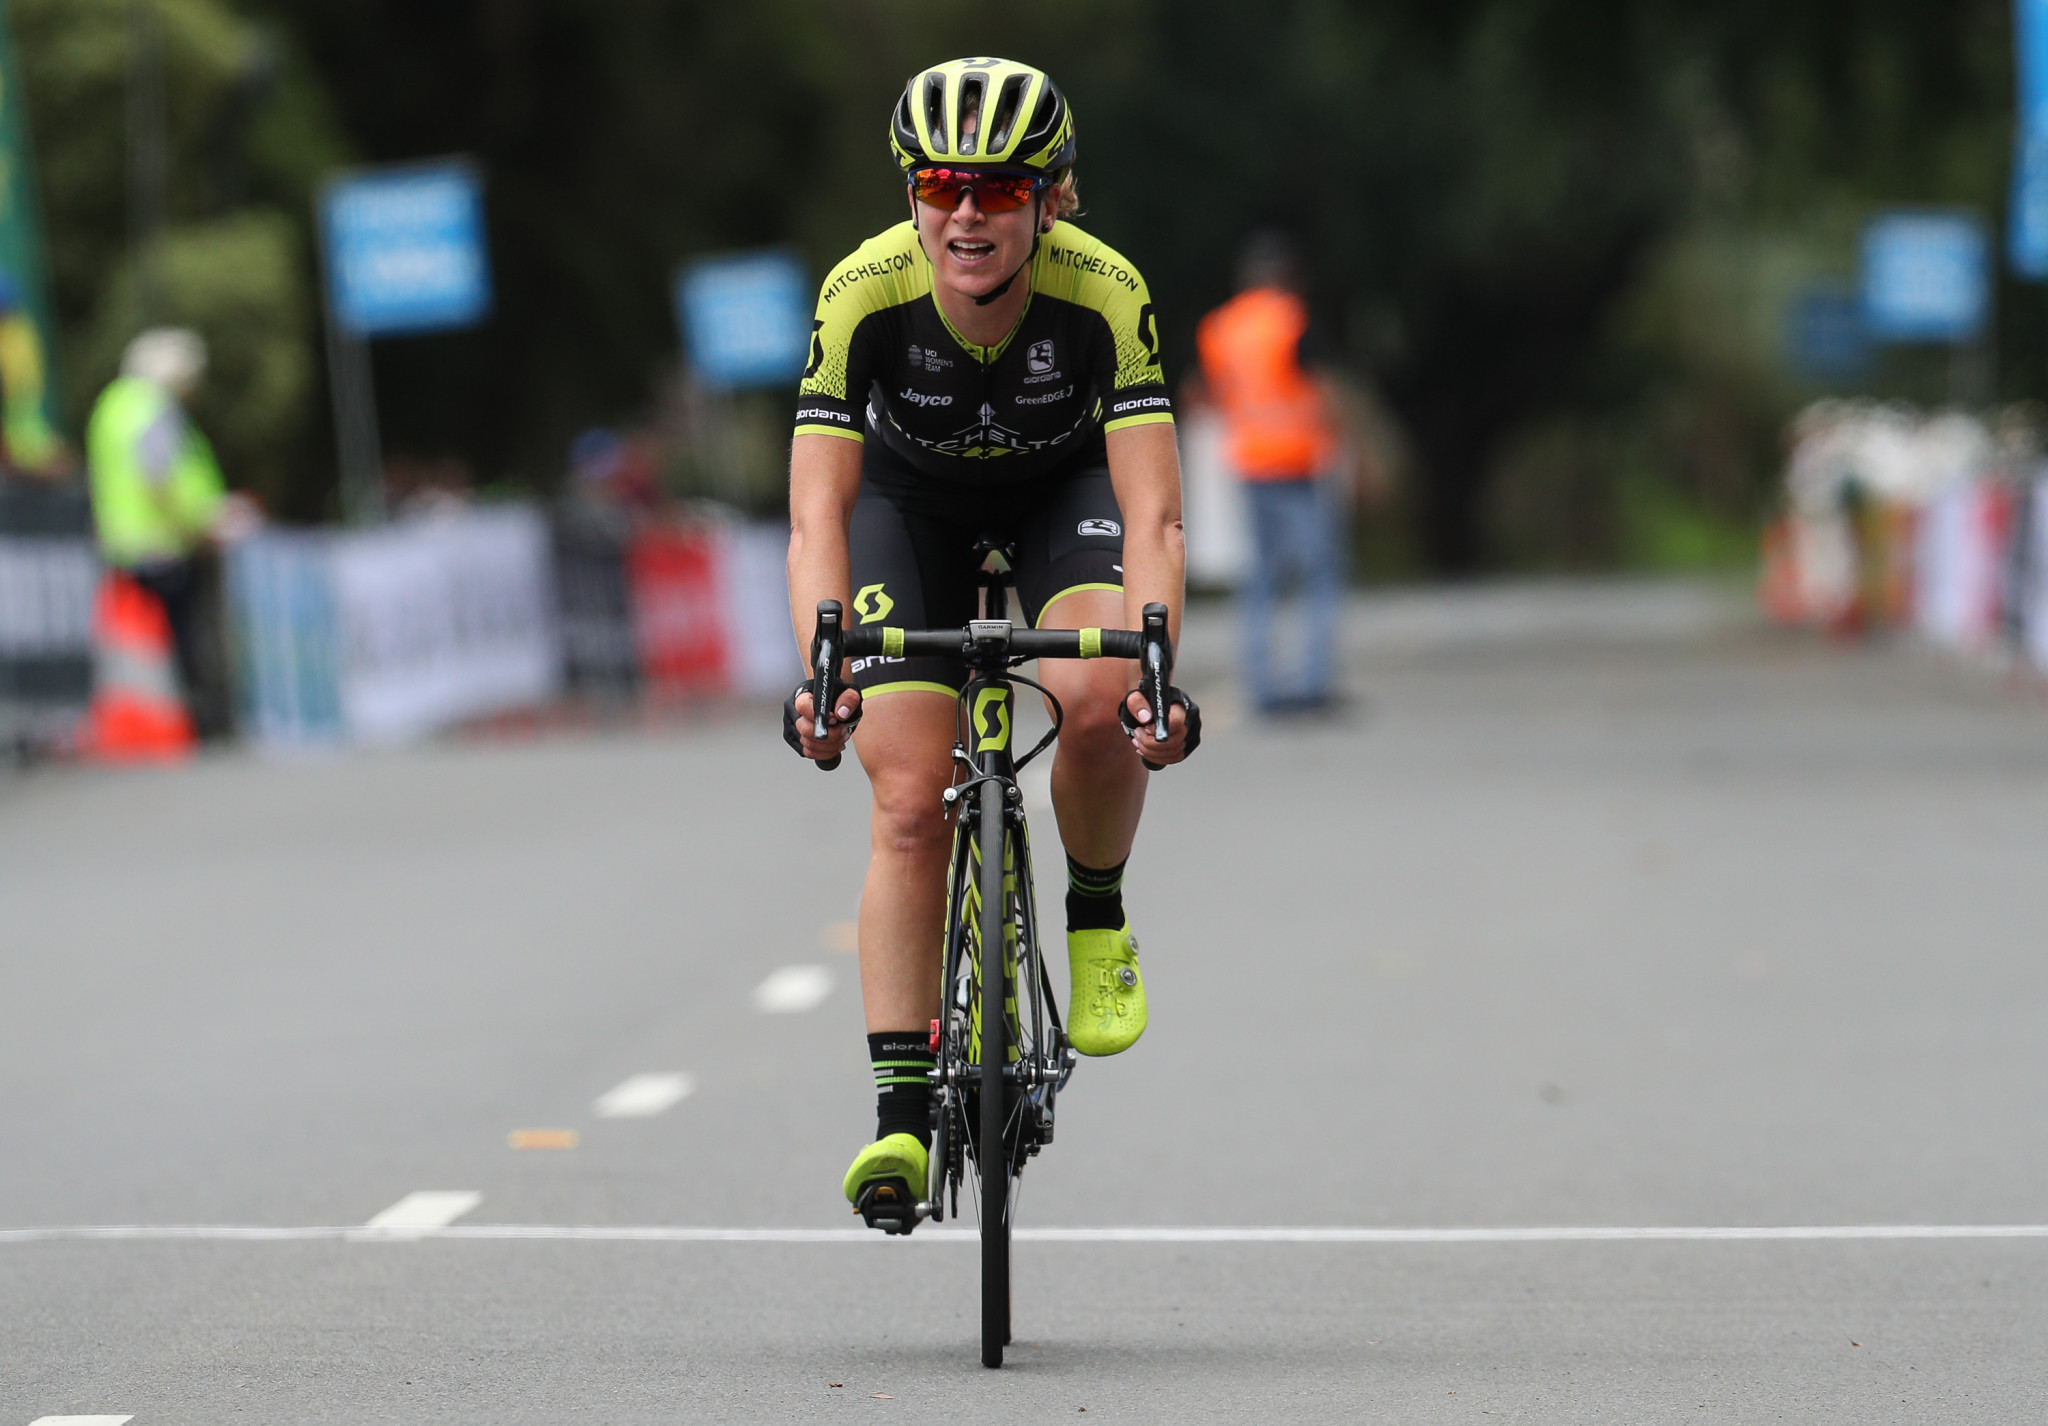 Defending champion Annemiek van Vleuten moved a step closer to retaining her title ©Getty Images